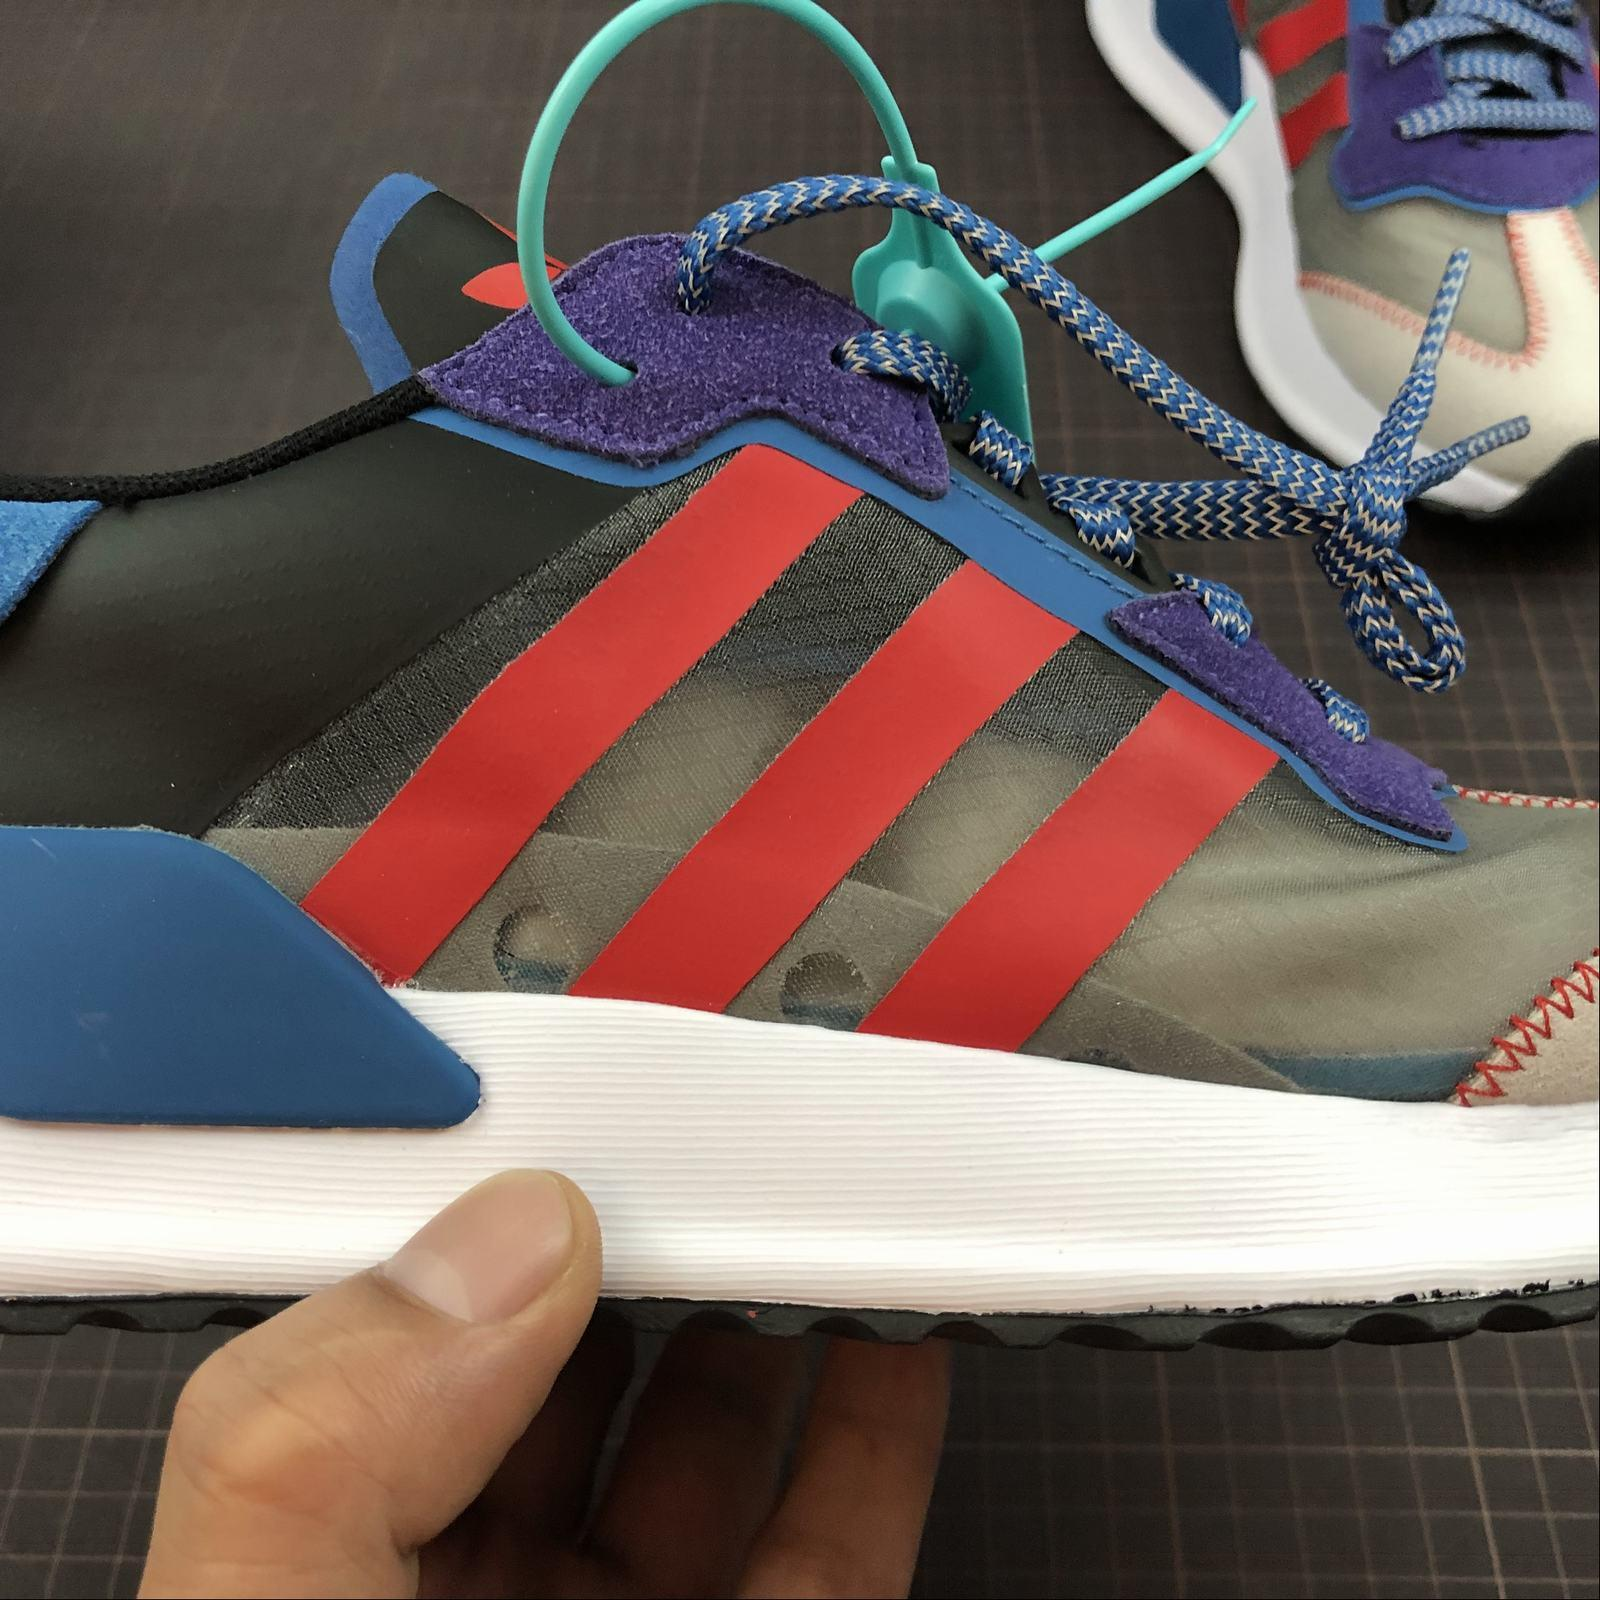 wholesale Top quality adidas shoes Adidas X PLR NMD Sneaker Shoes